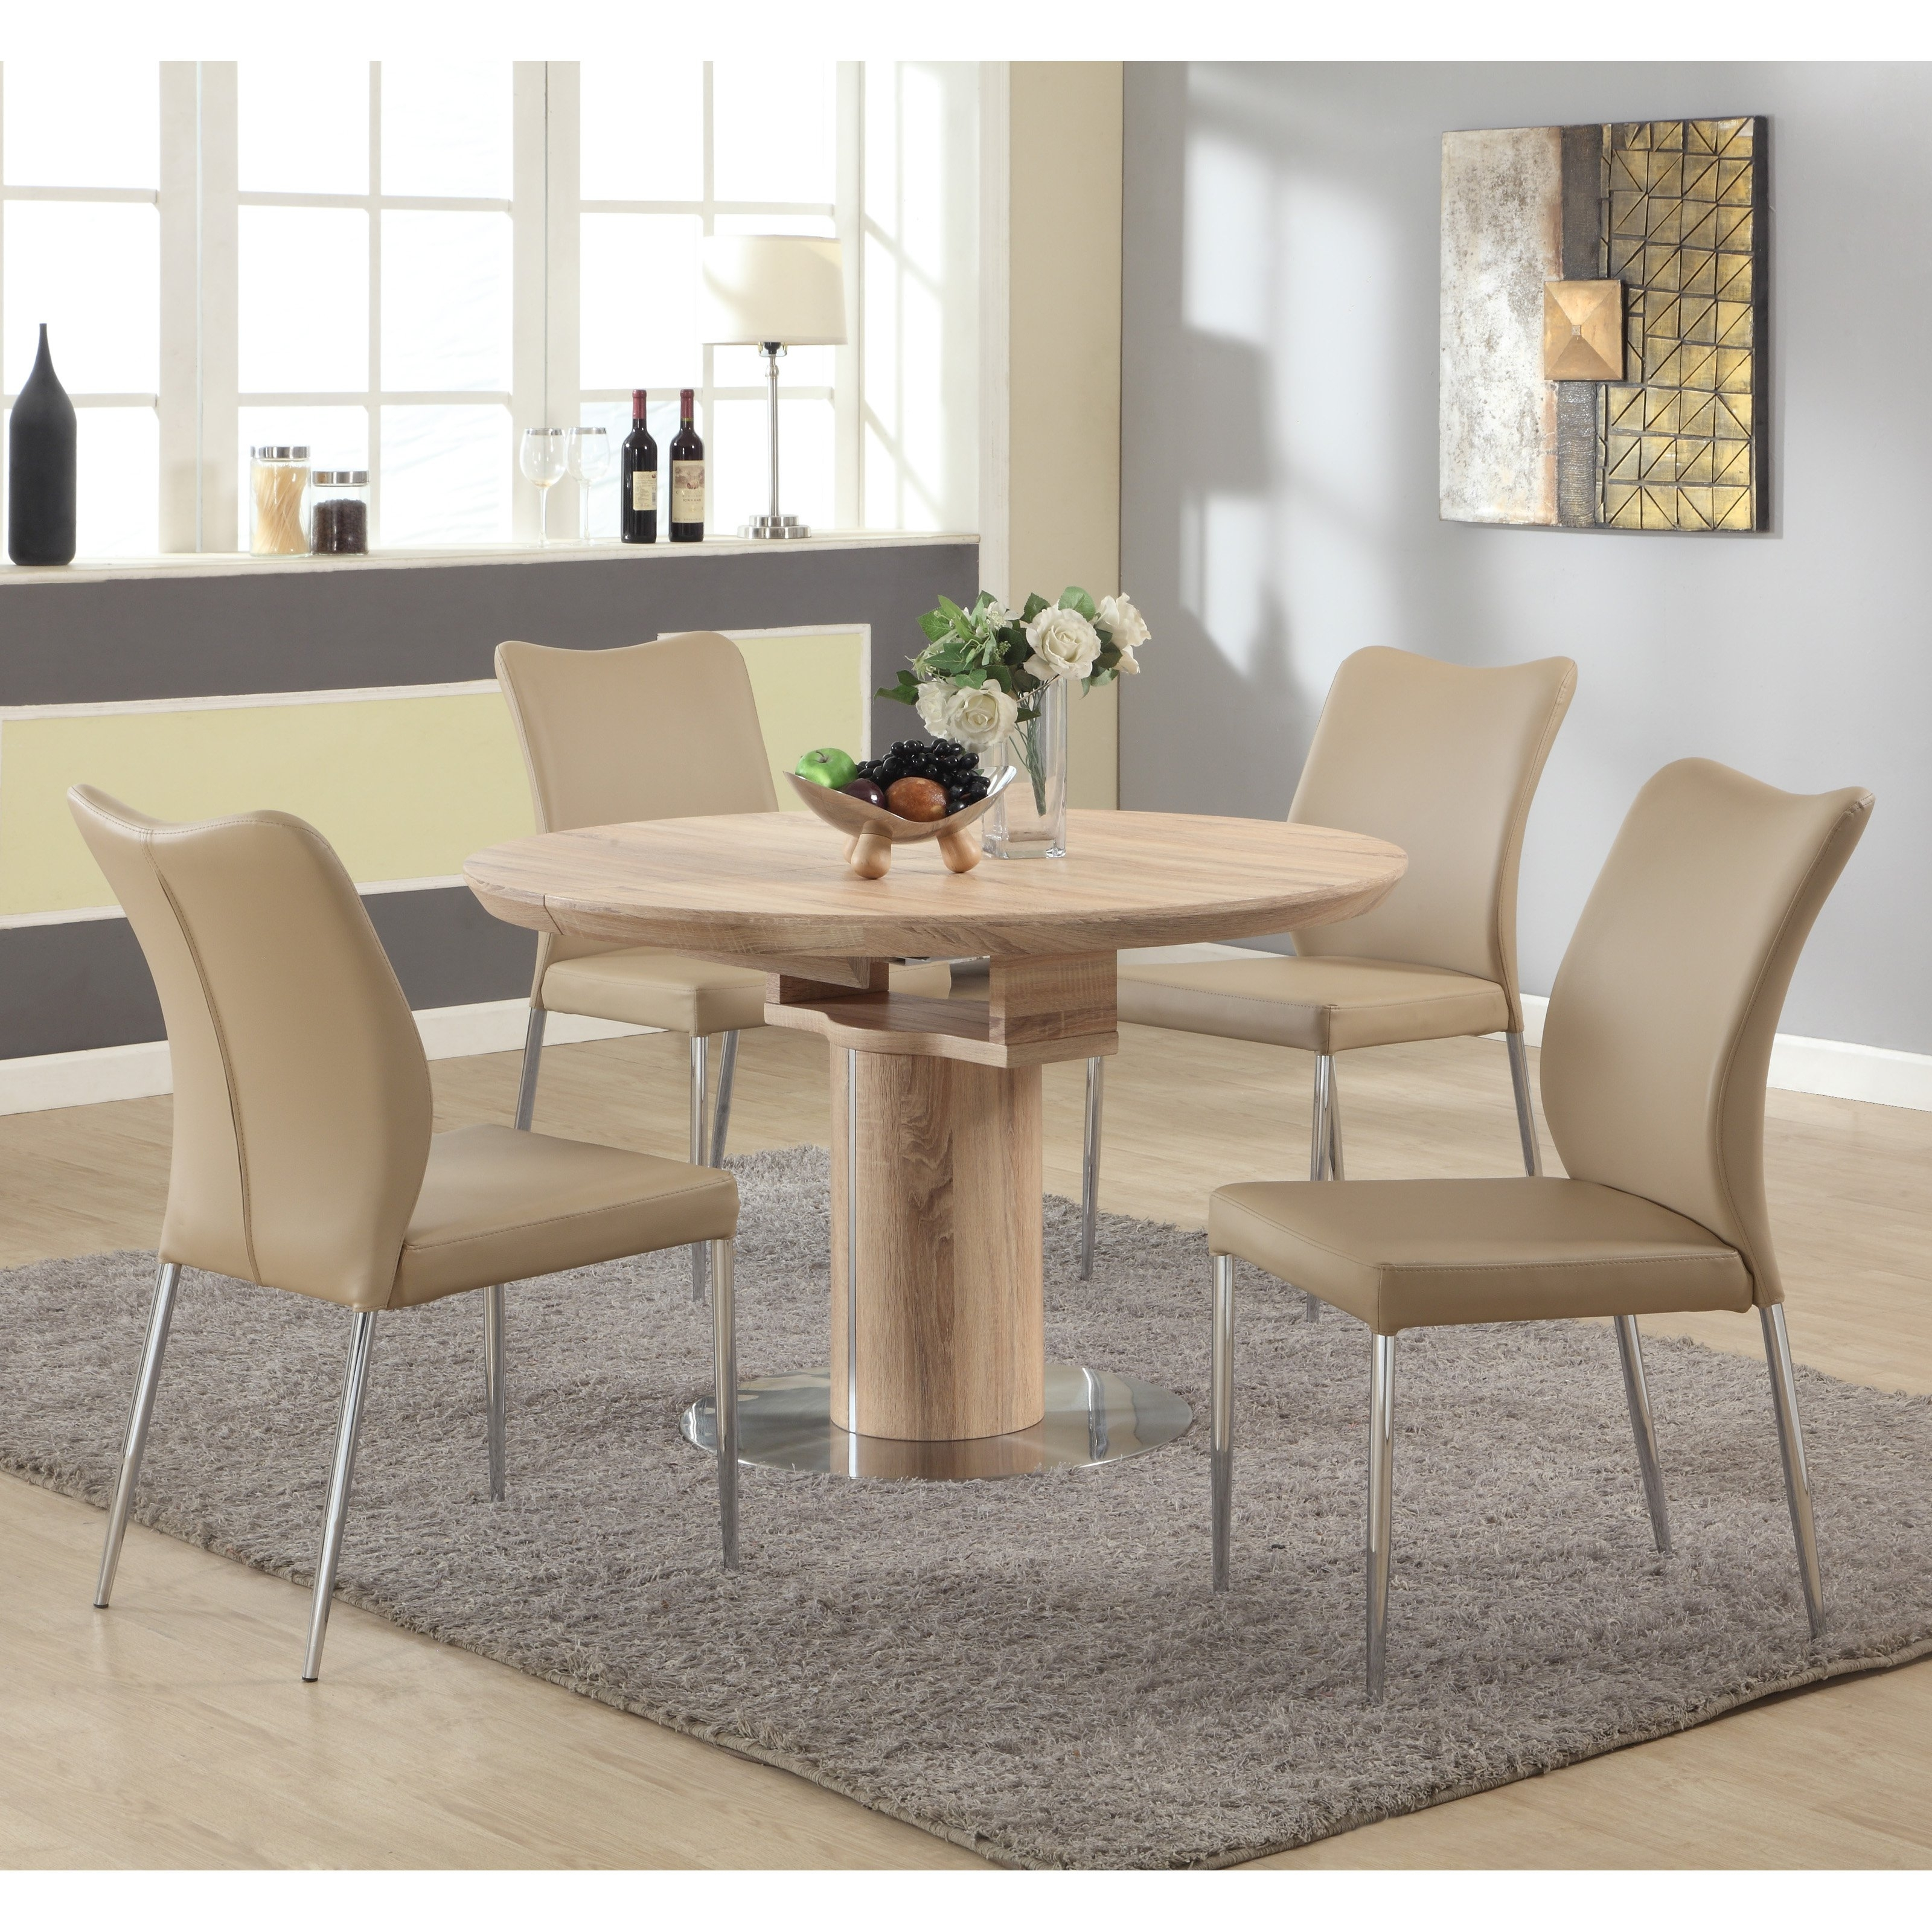 Chintaly Nora 5 Piece Dining Table Set – Walmart In 2018 Bradford Dining Tables (View 8 of 20)